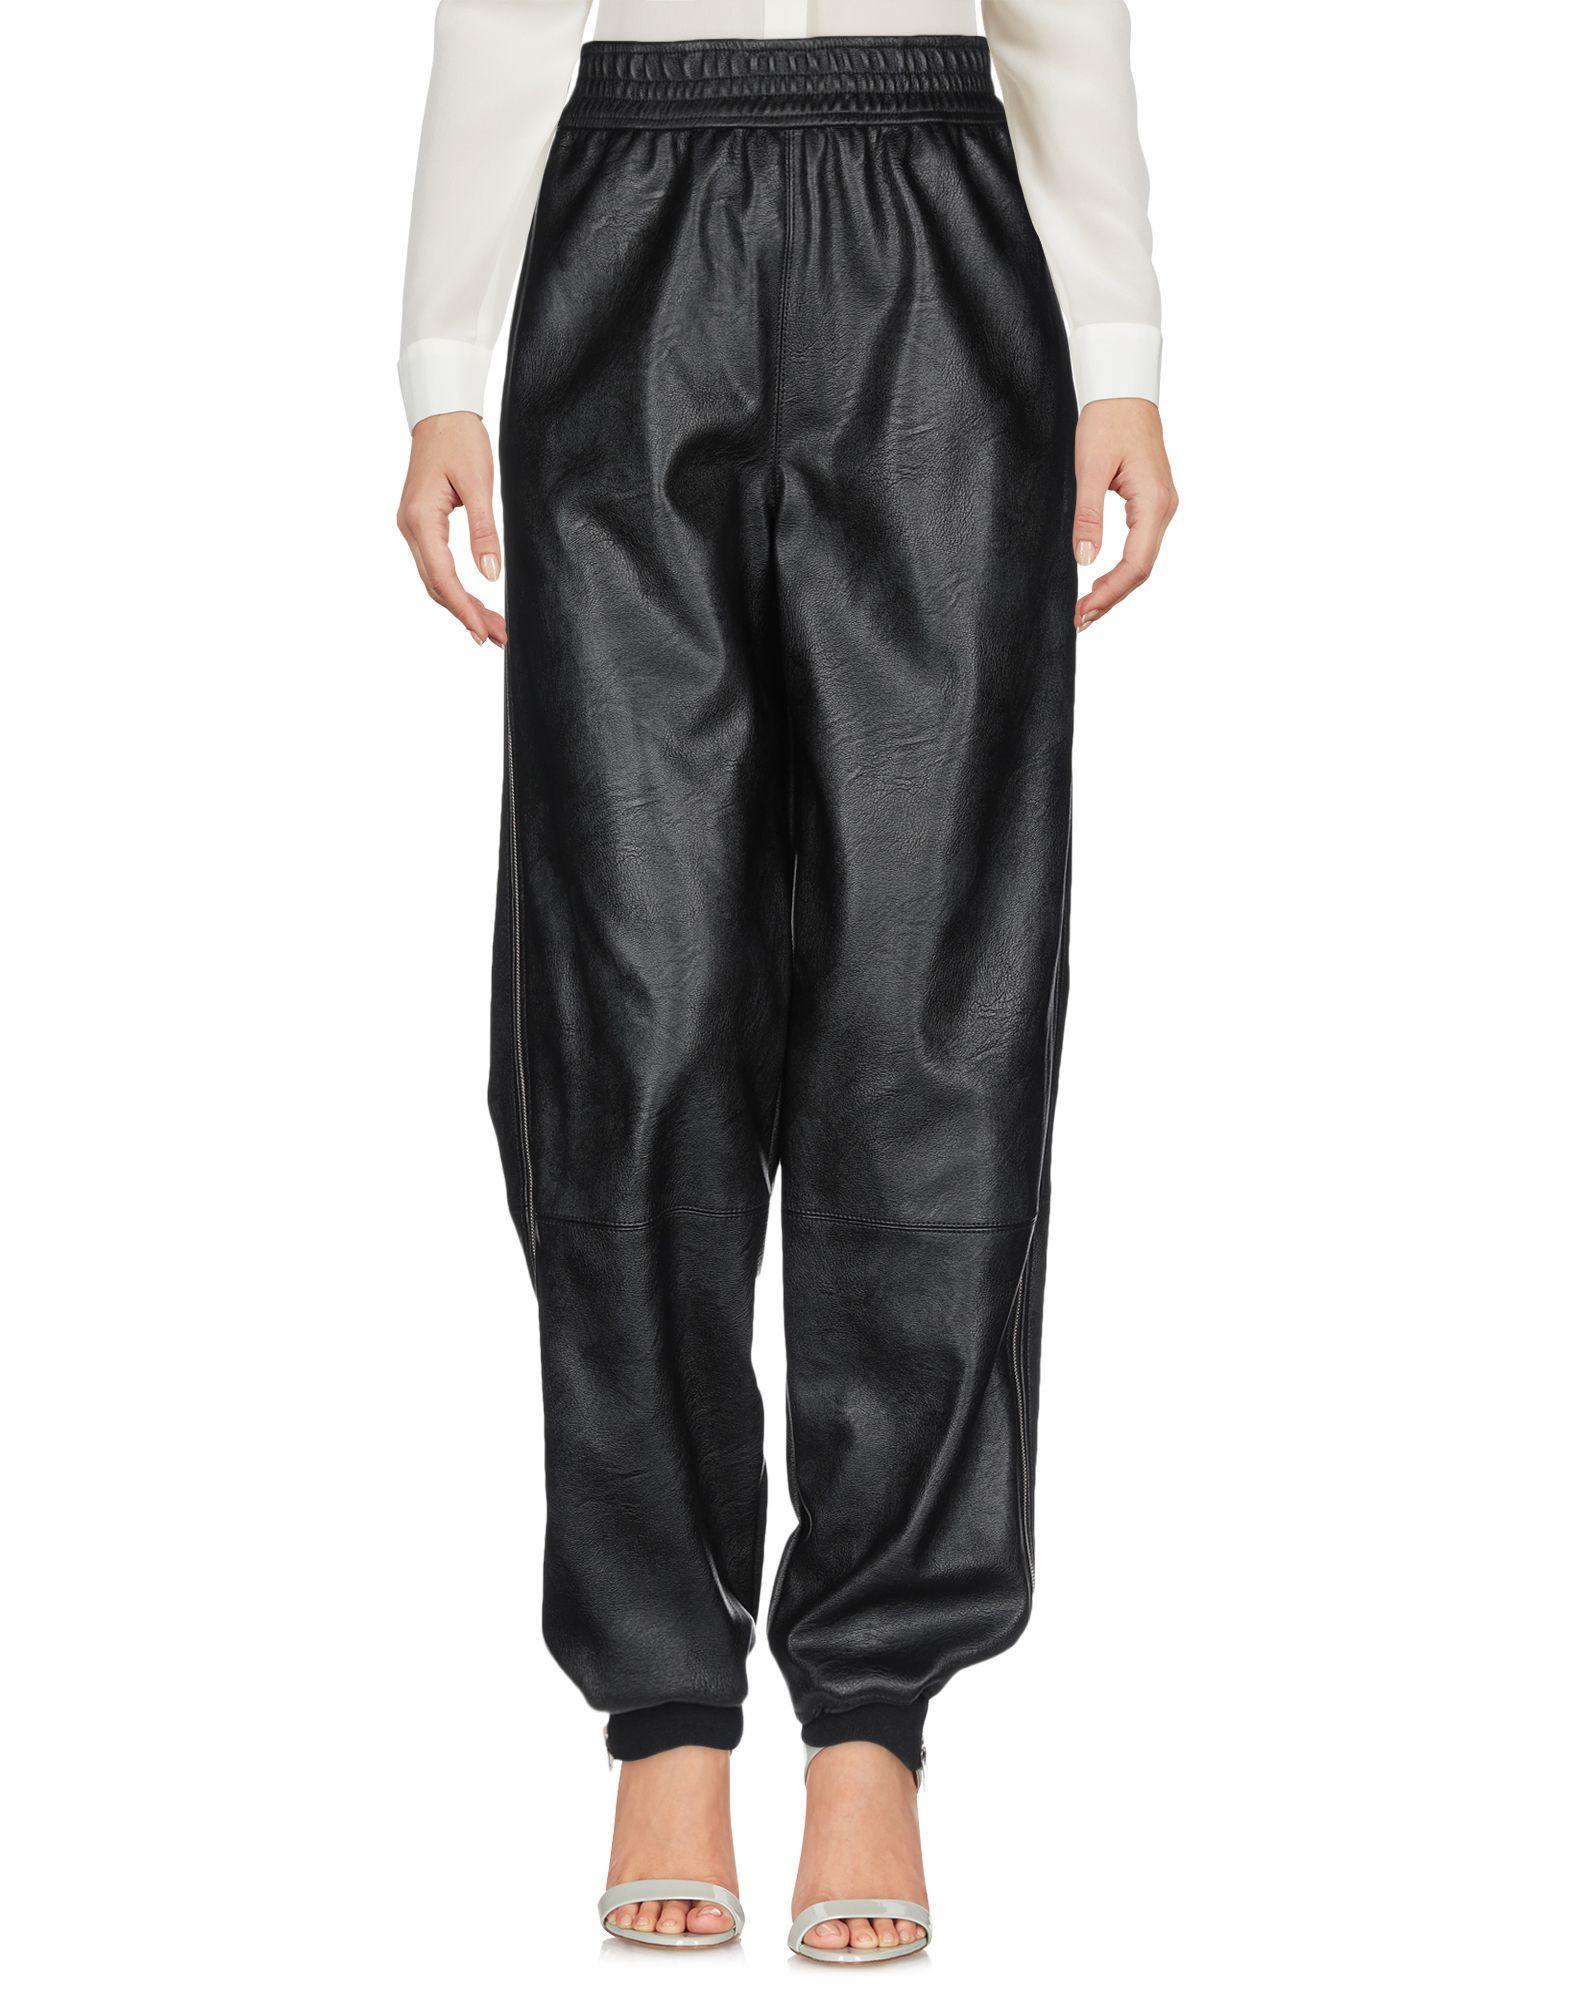 Stella McCartney Black Faux Leather Trousers